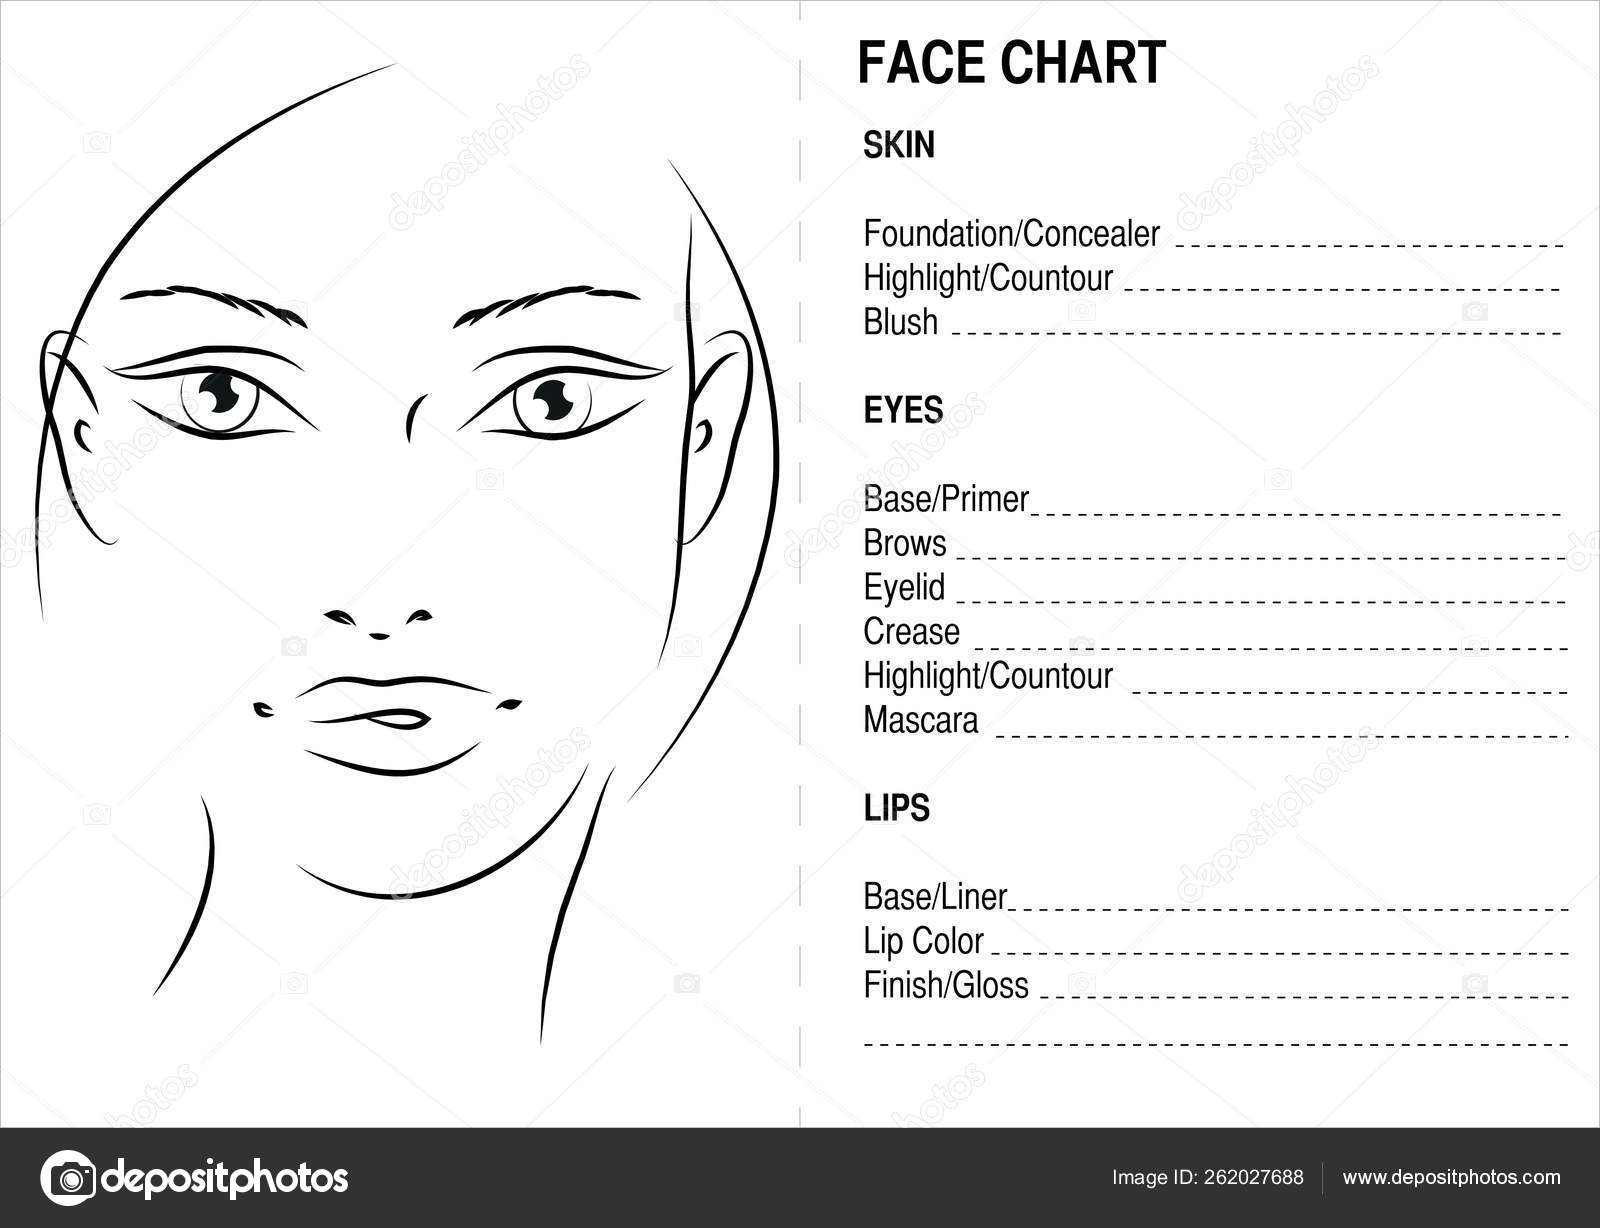 Face Chart Makeup Artis Blank Face Charts Stock Photo By C Yayimages 262027688